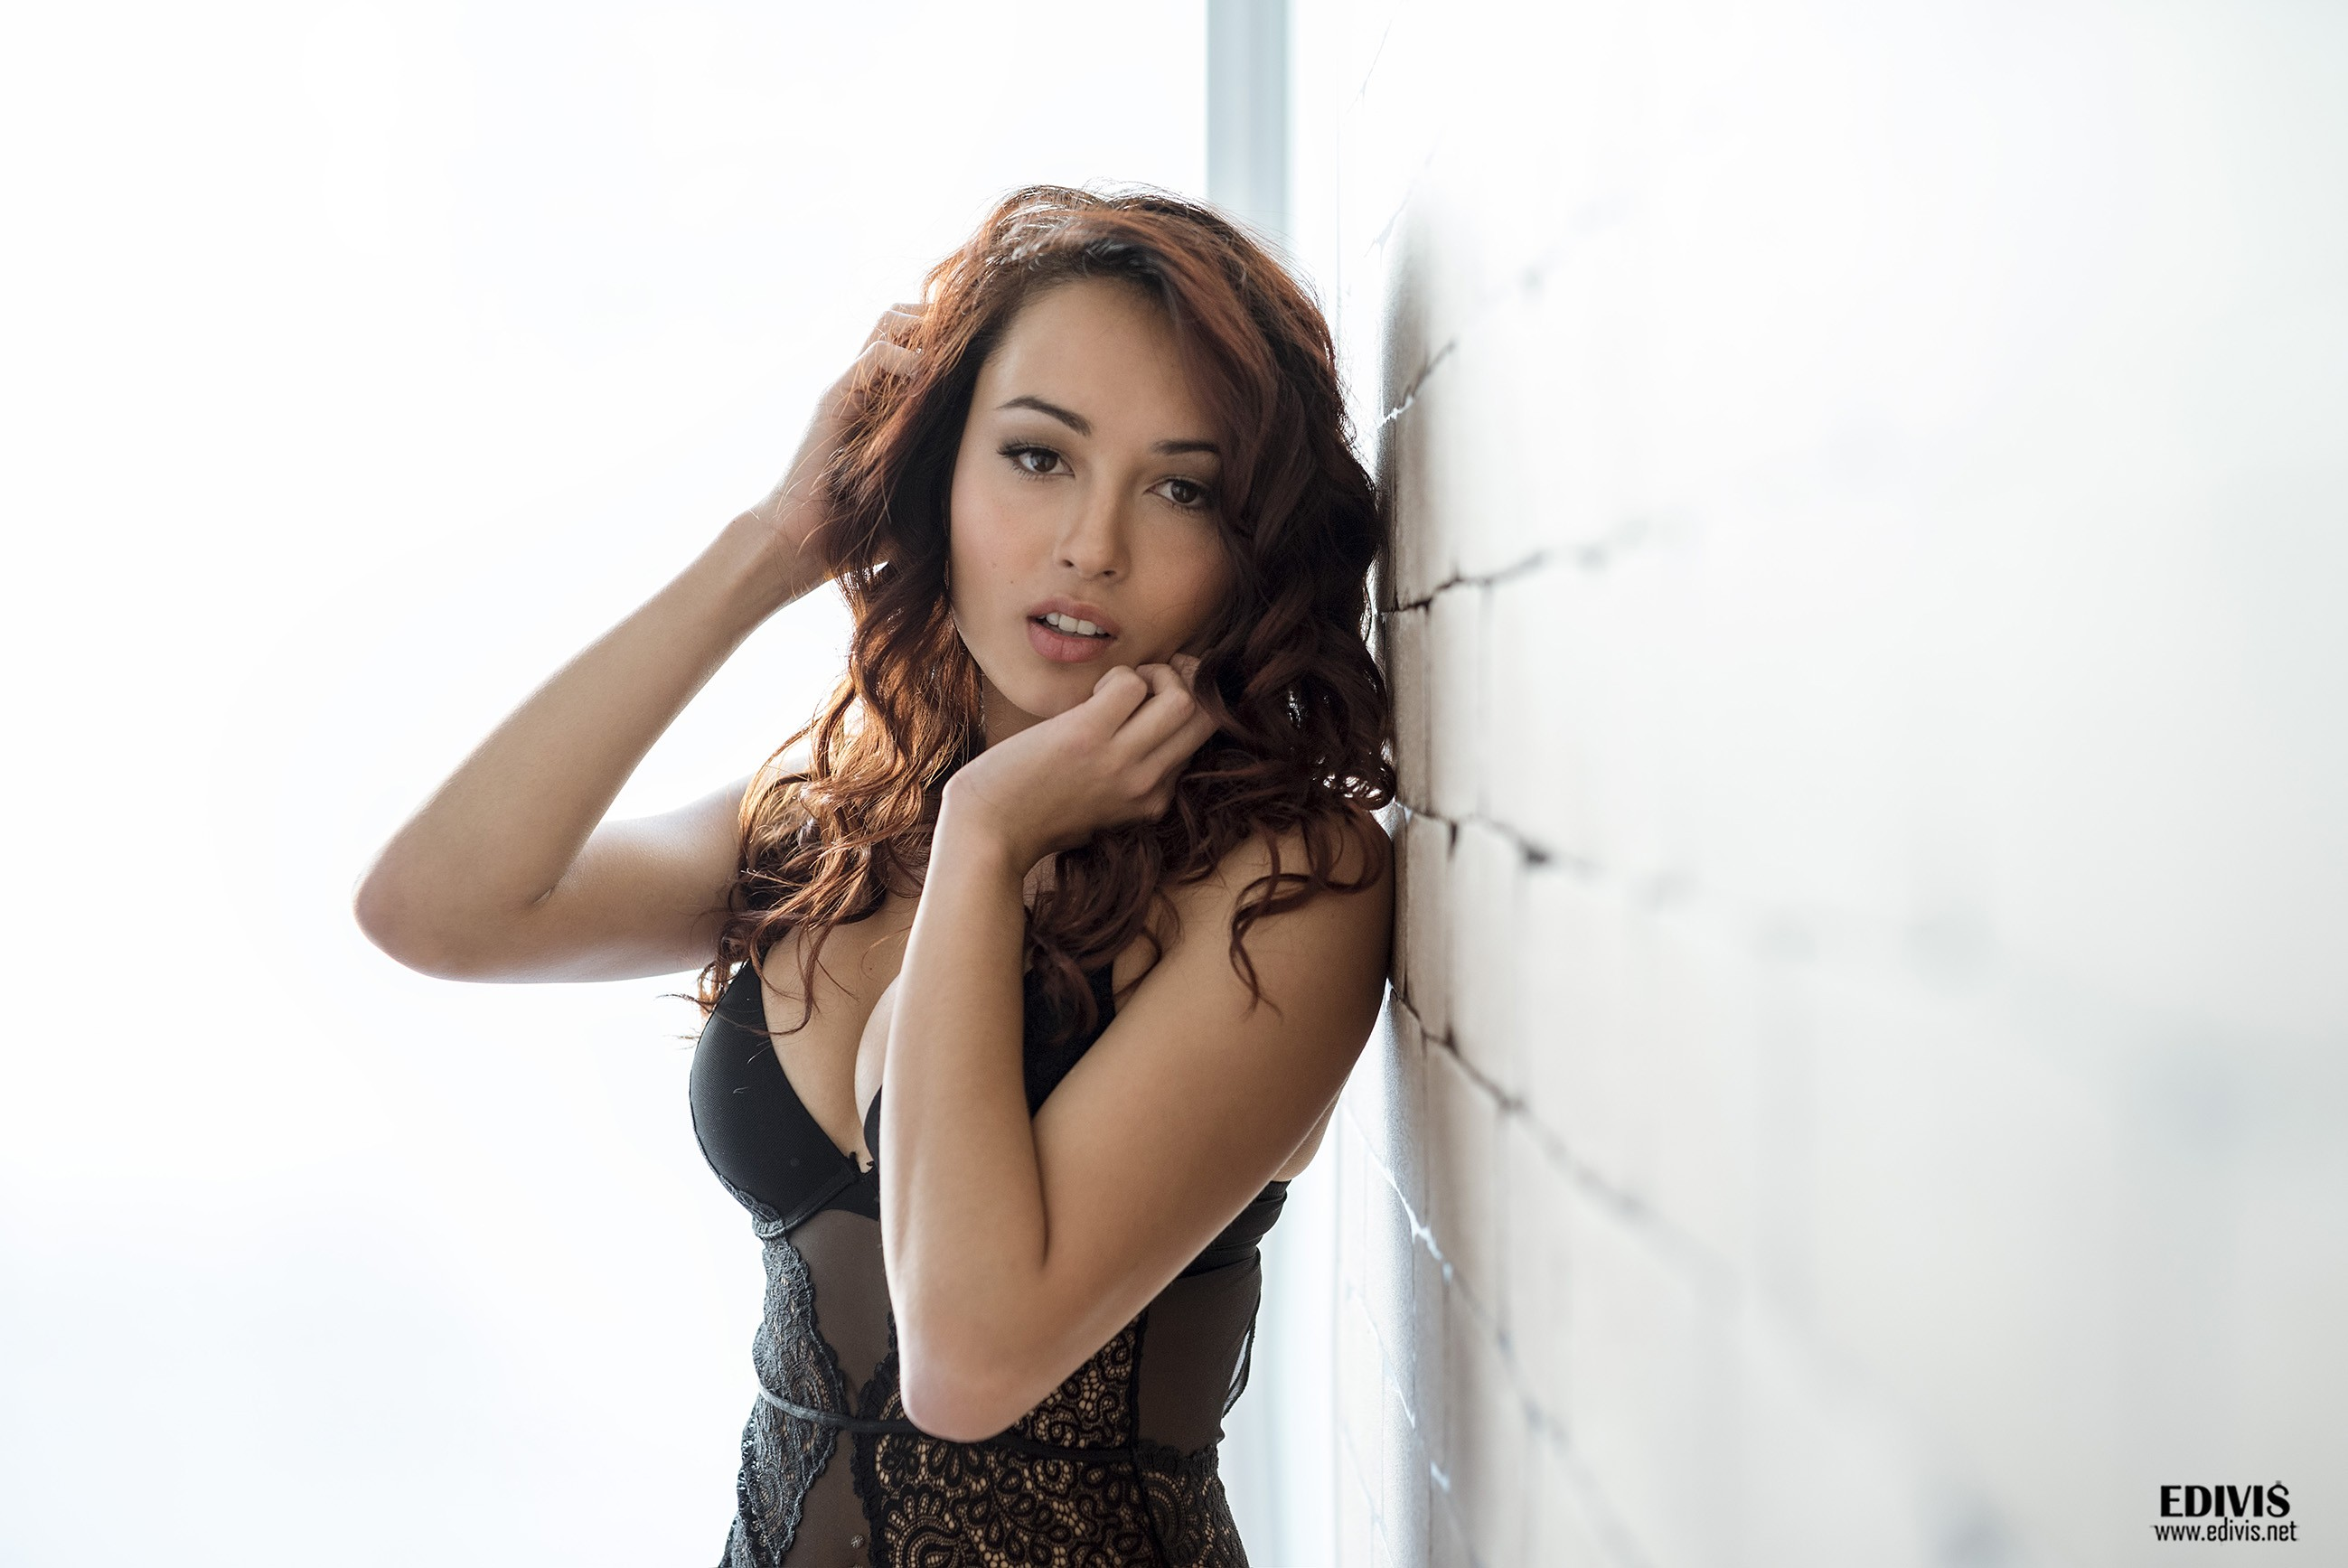 Boudoir with Melodie